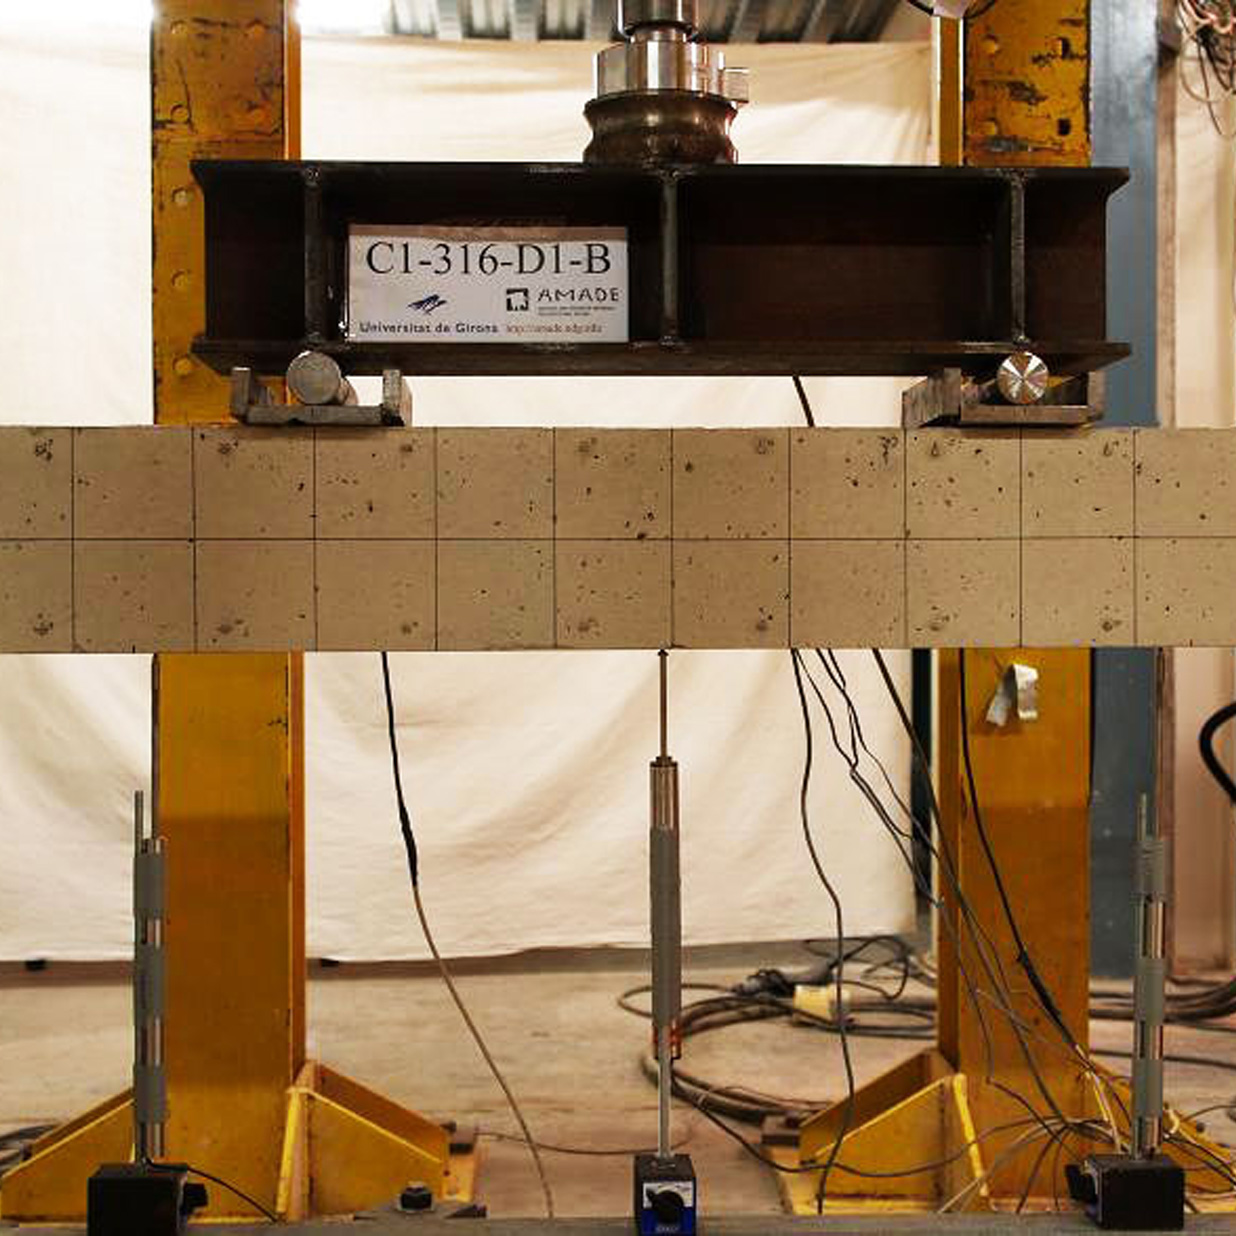 4-points bending test of a beam